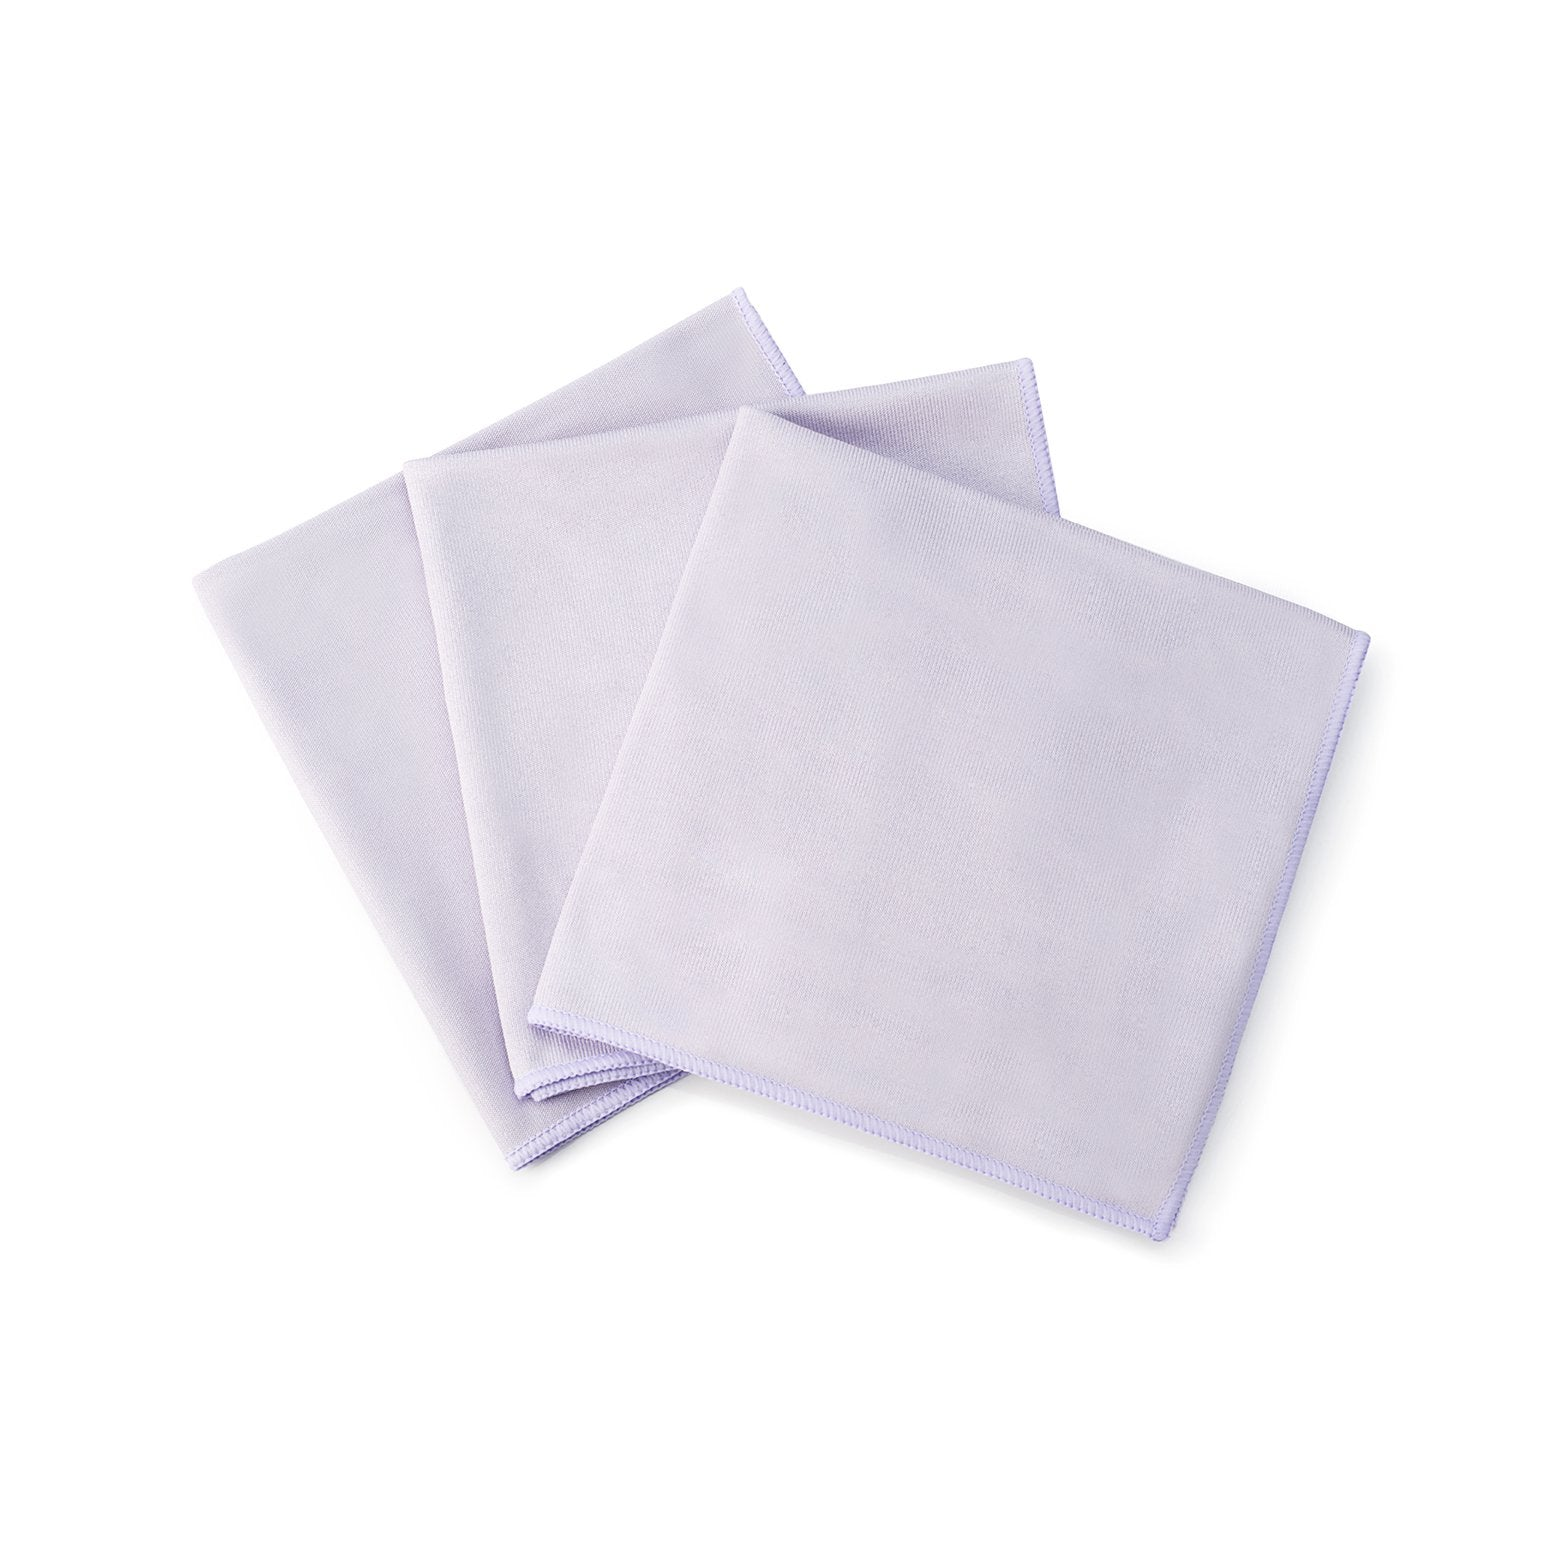 Shine Bright Microfiber Cloths (Pack of 3)